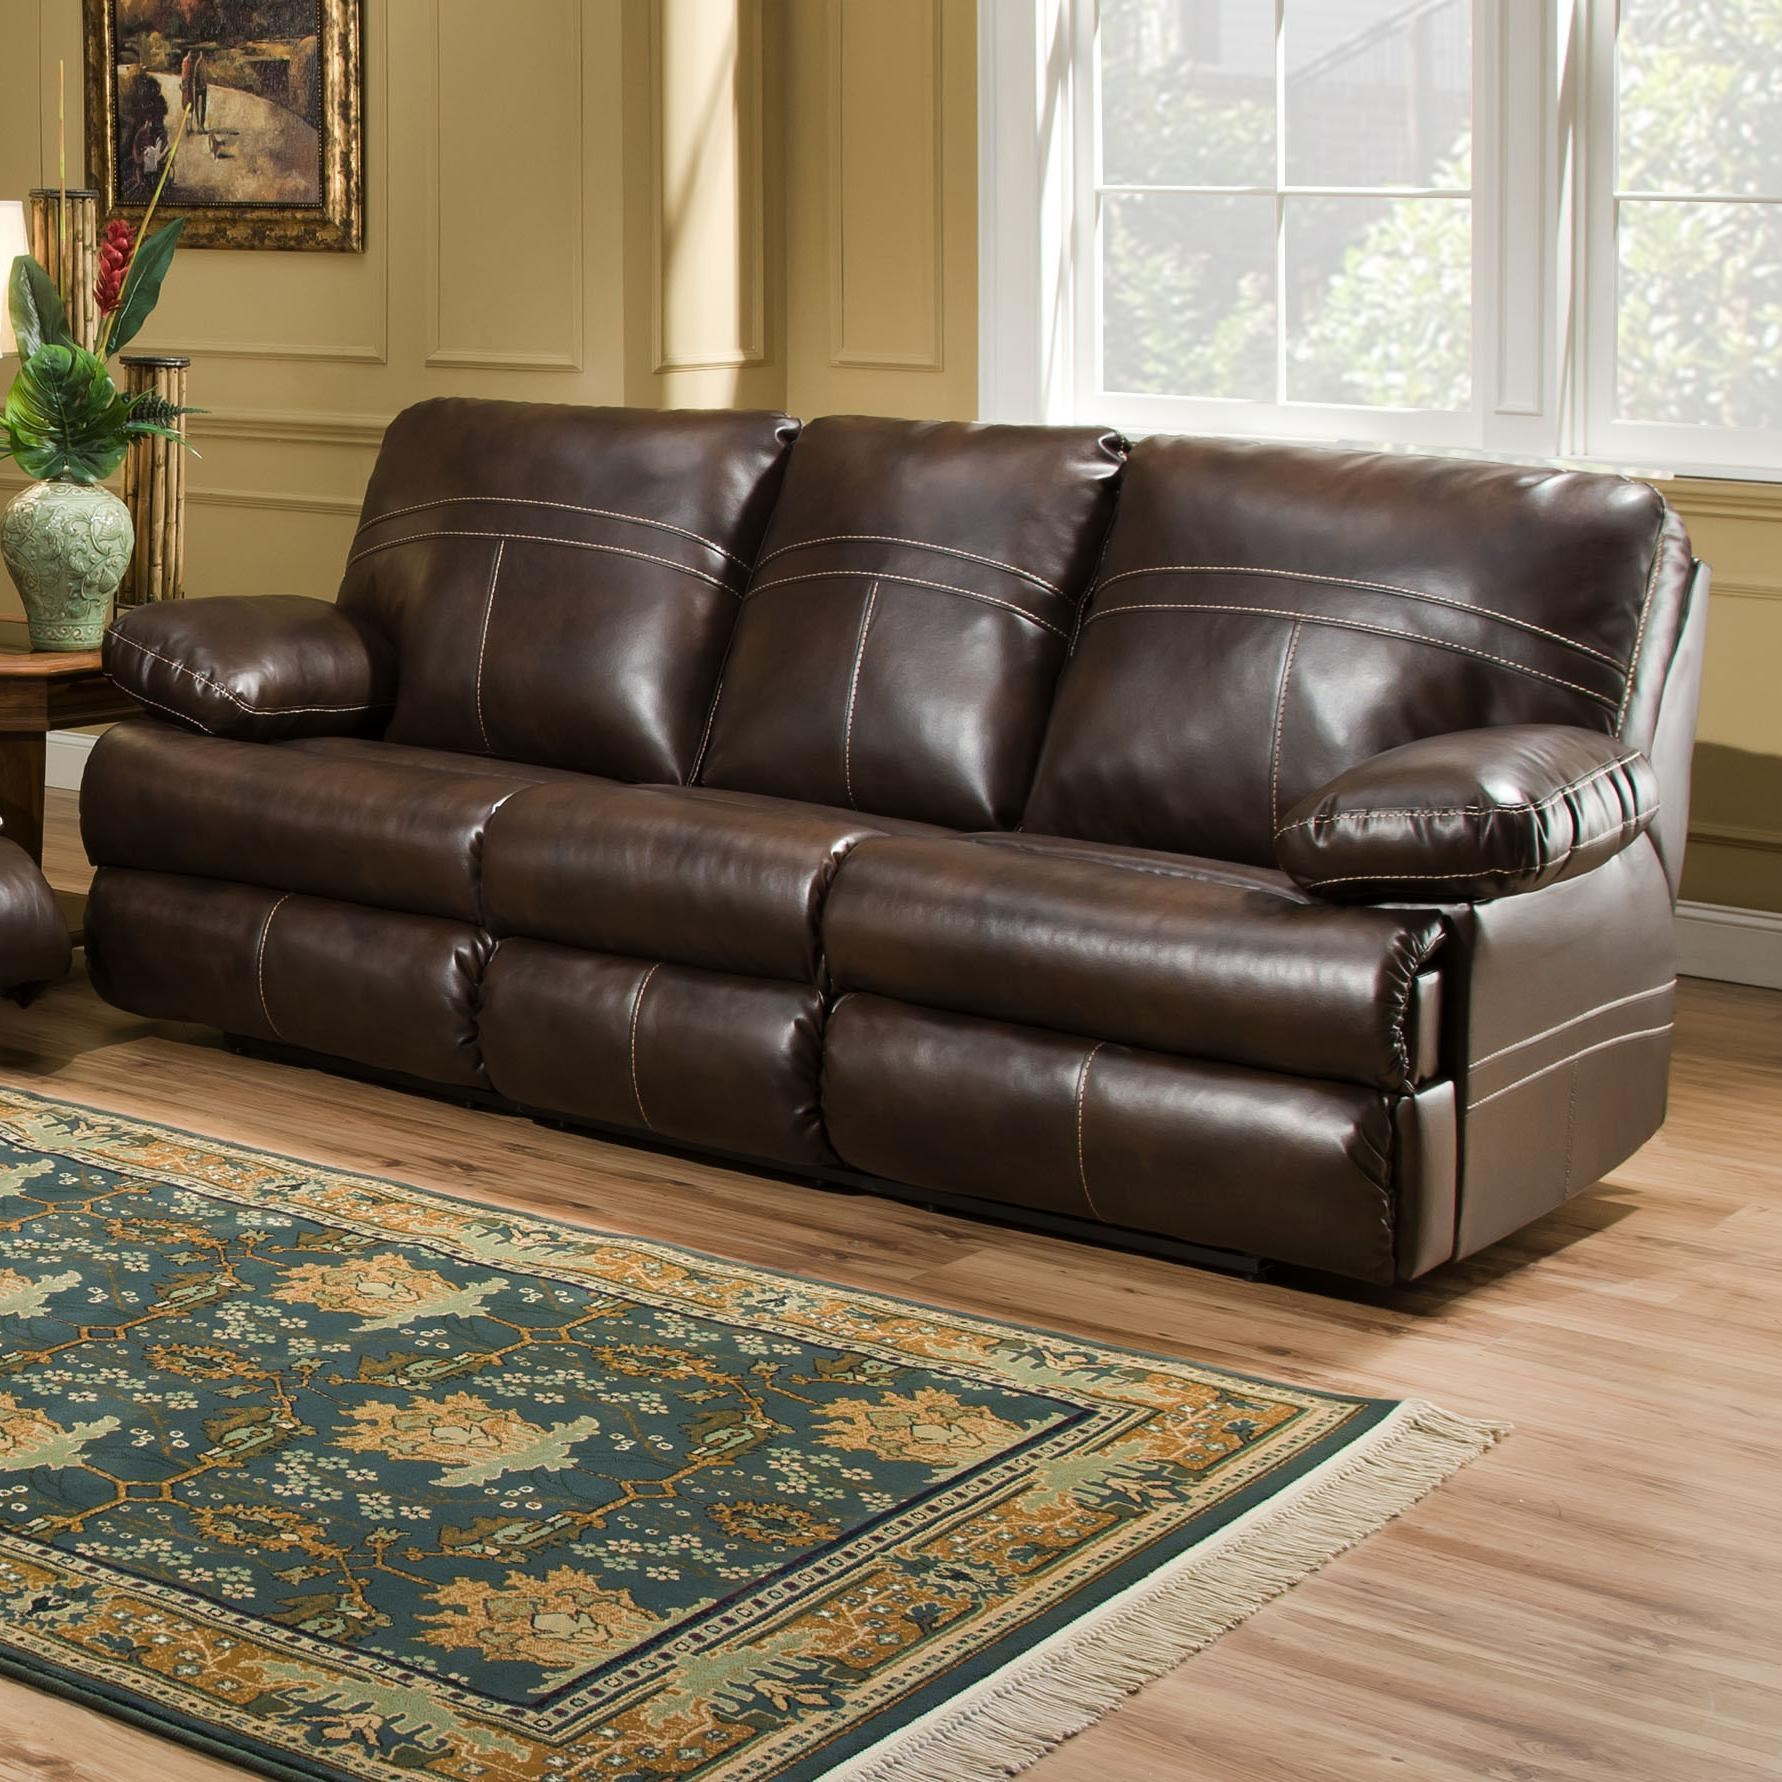 Simmons Upholstery 50981Double Motion Sofa ...